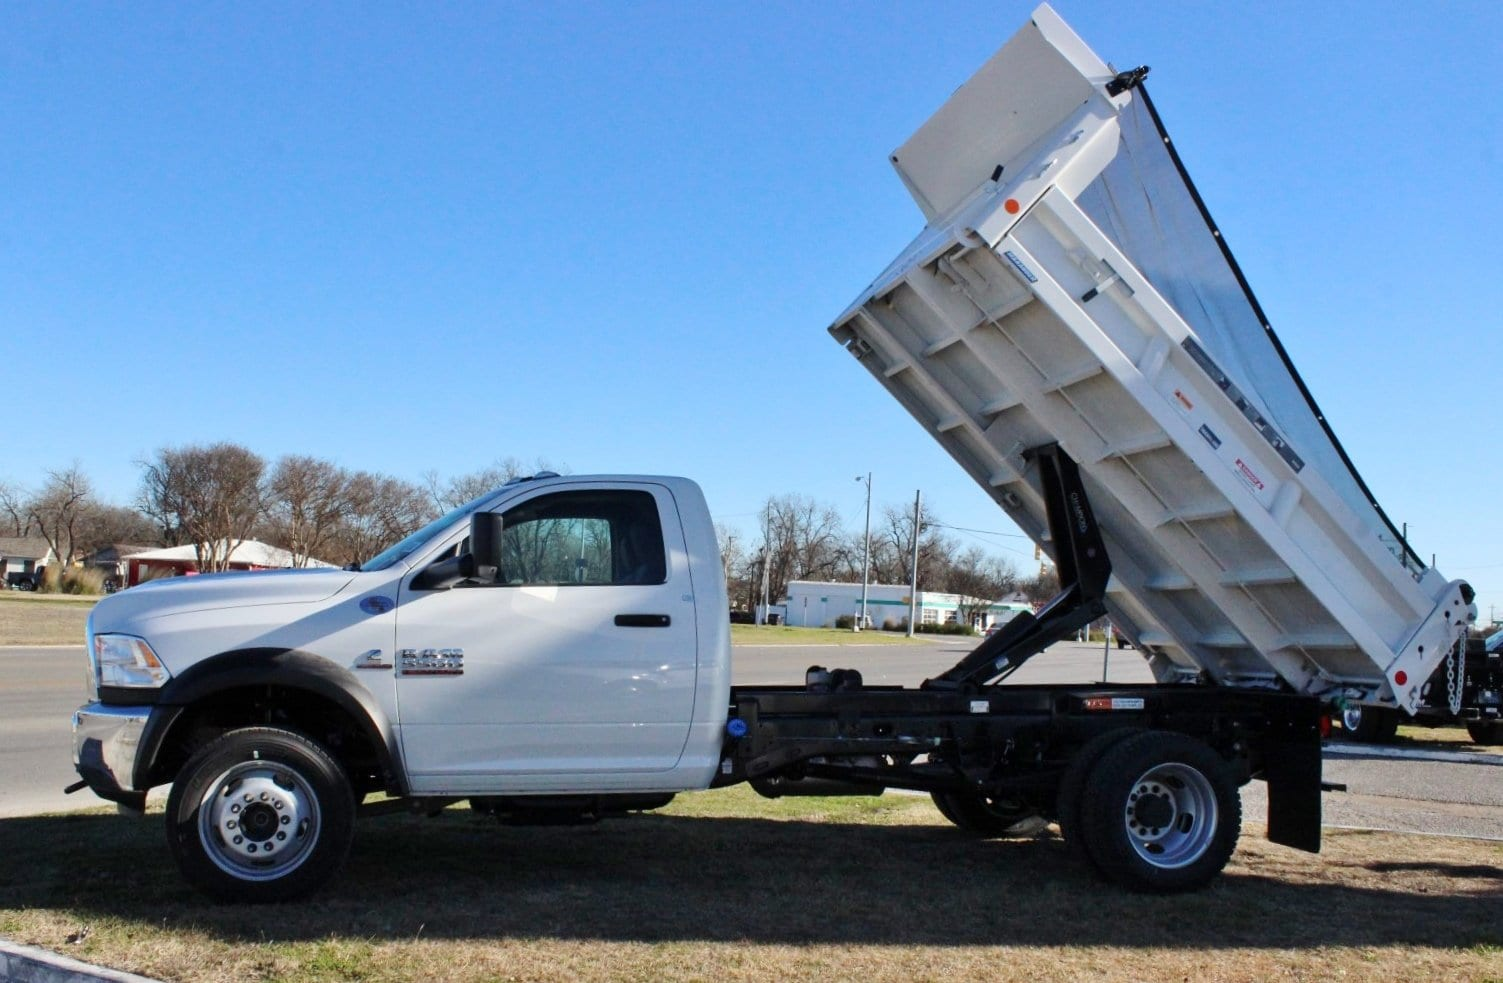 2018 Ram 5500 Regular Cab DRW 4x4, Dump Body #TG182233 - photo 3